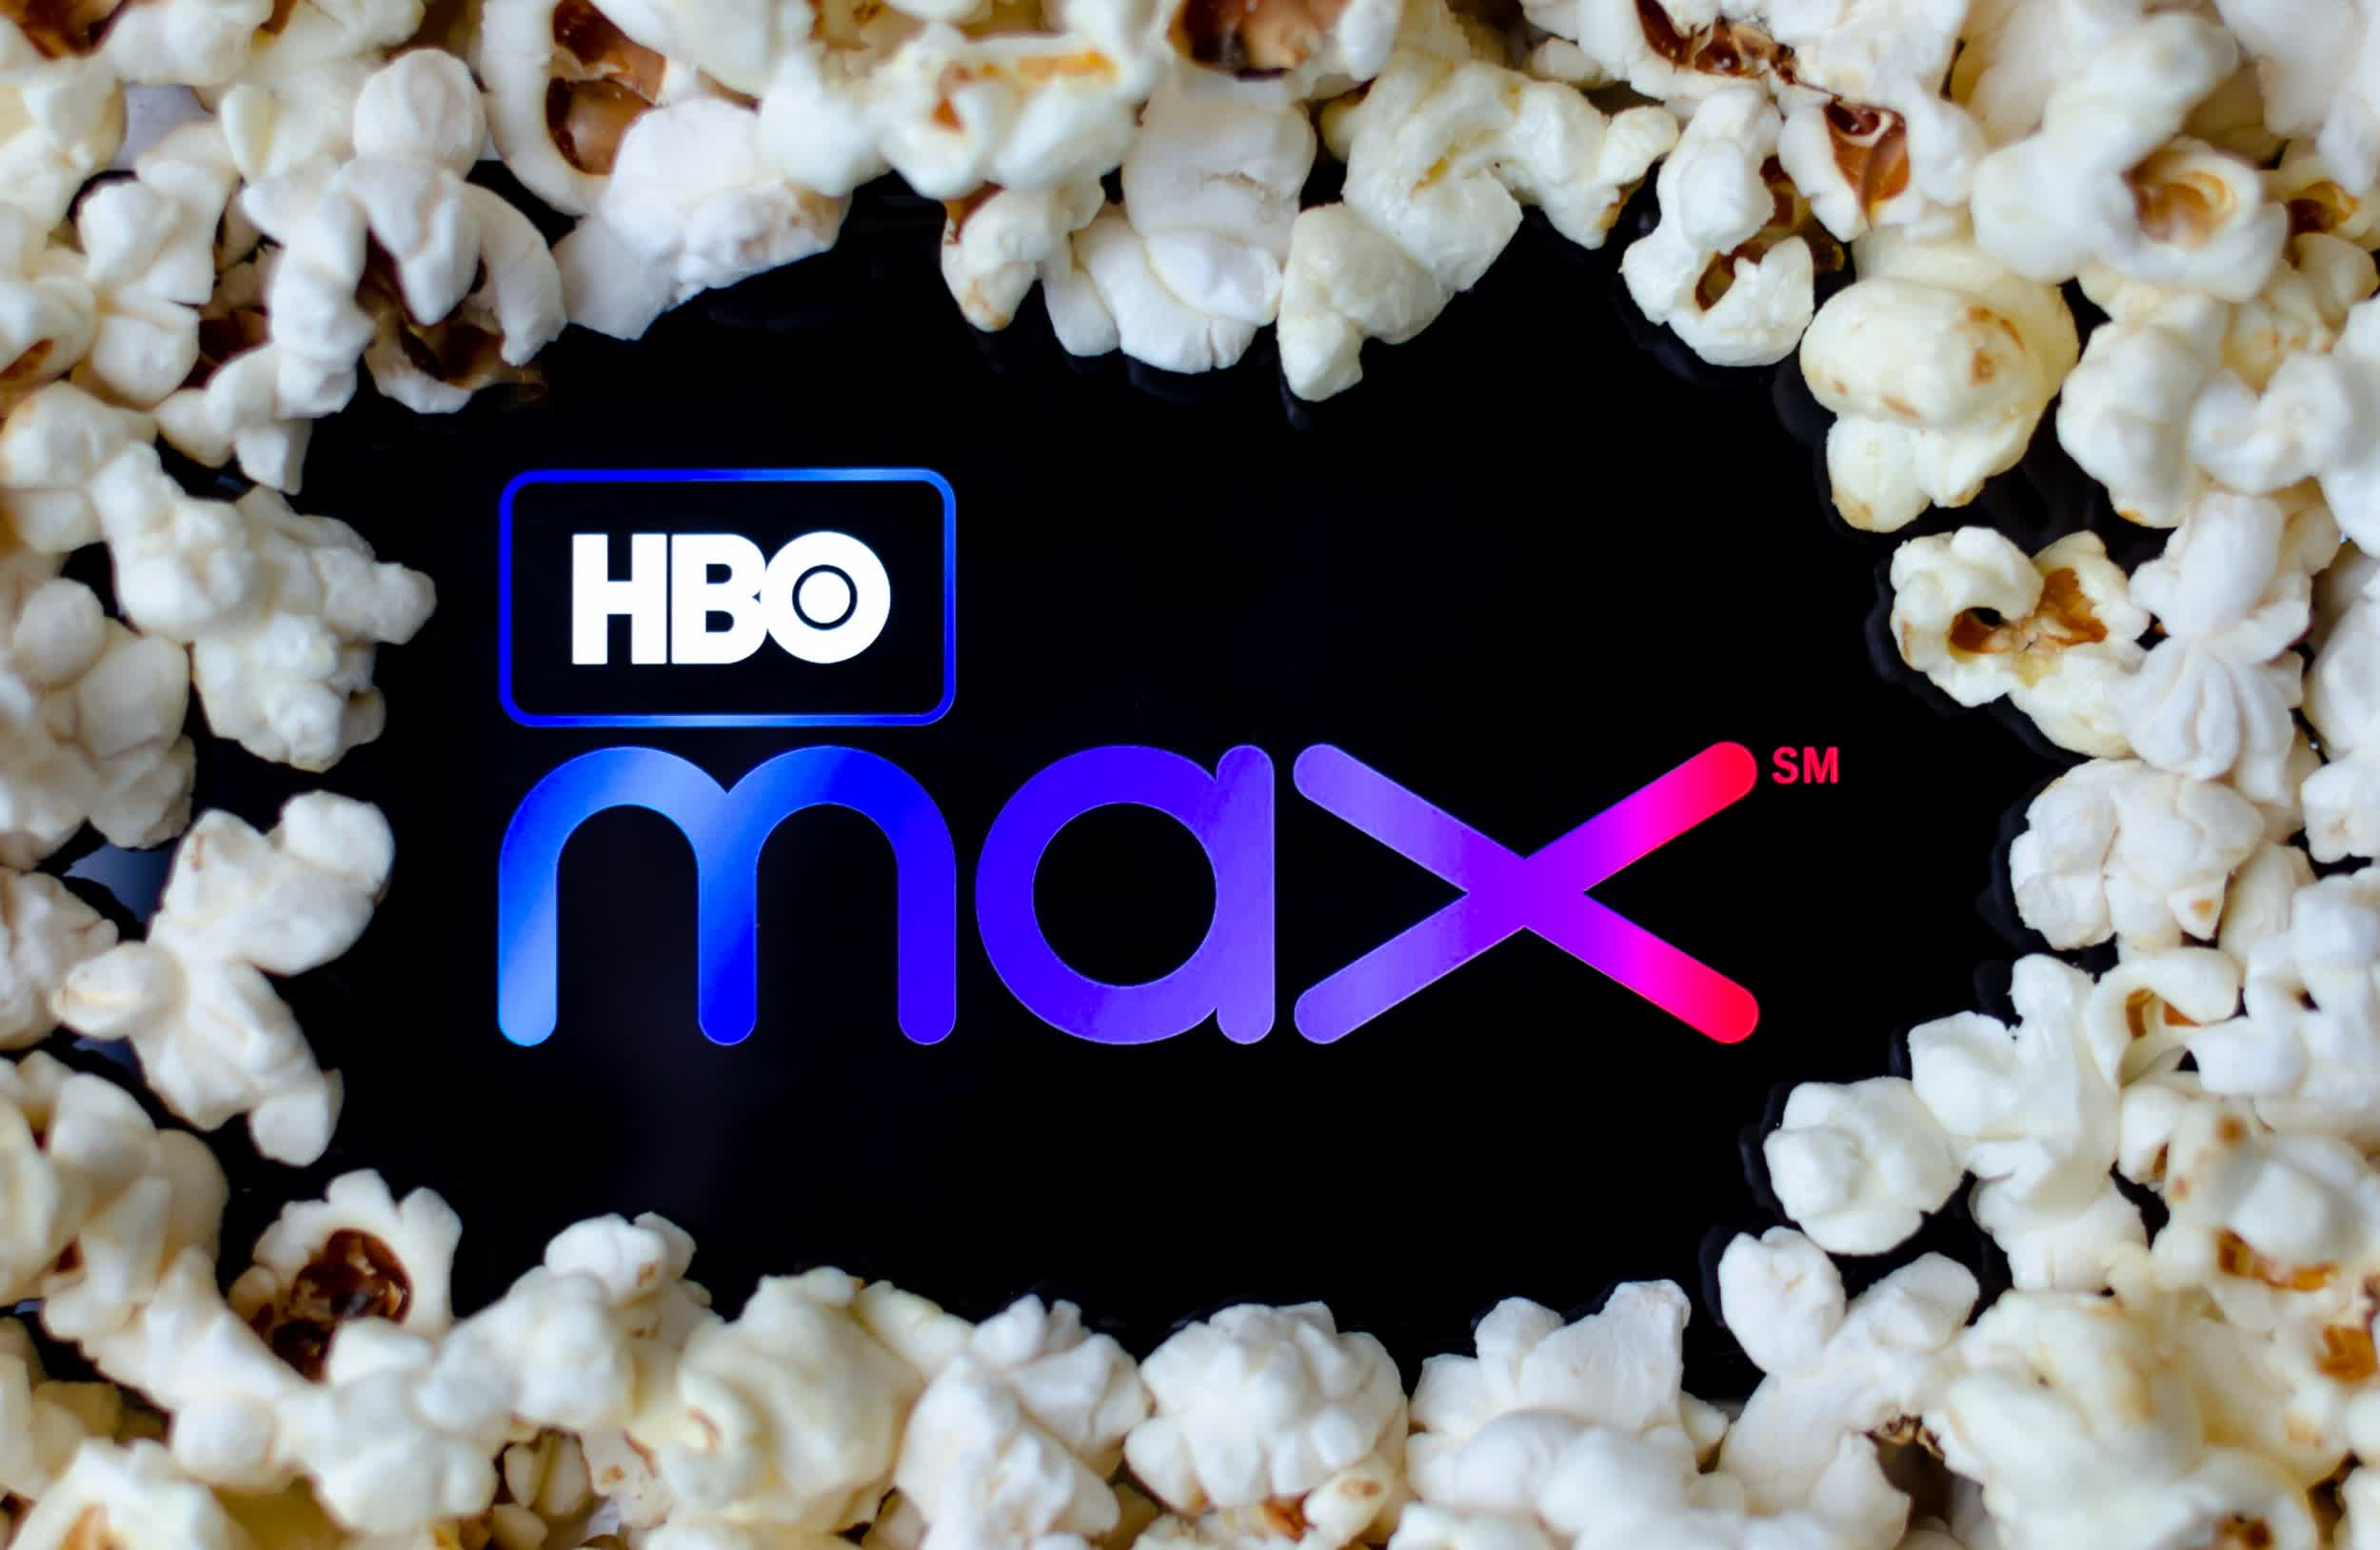 HBO Max hits 12.6 million activations ahead of Wonder Woman 1984 launch on Christmas Day